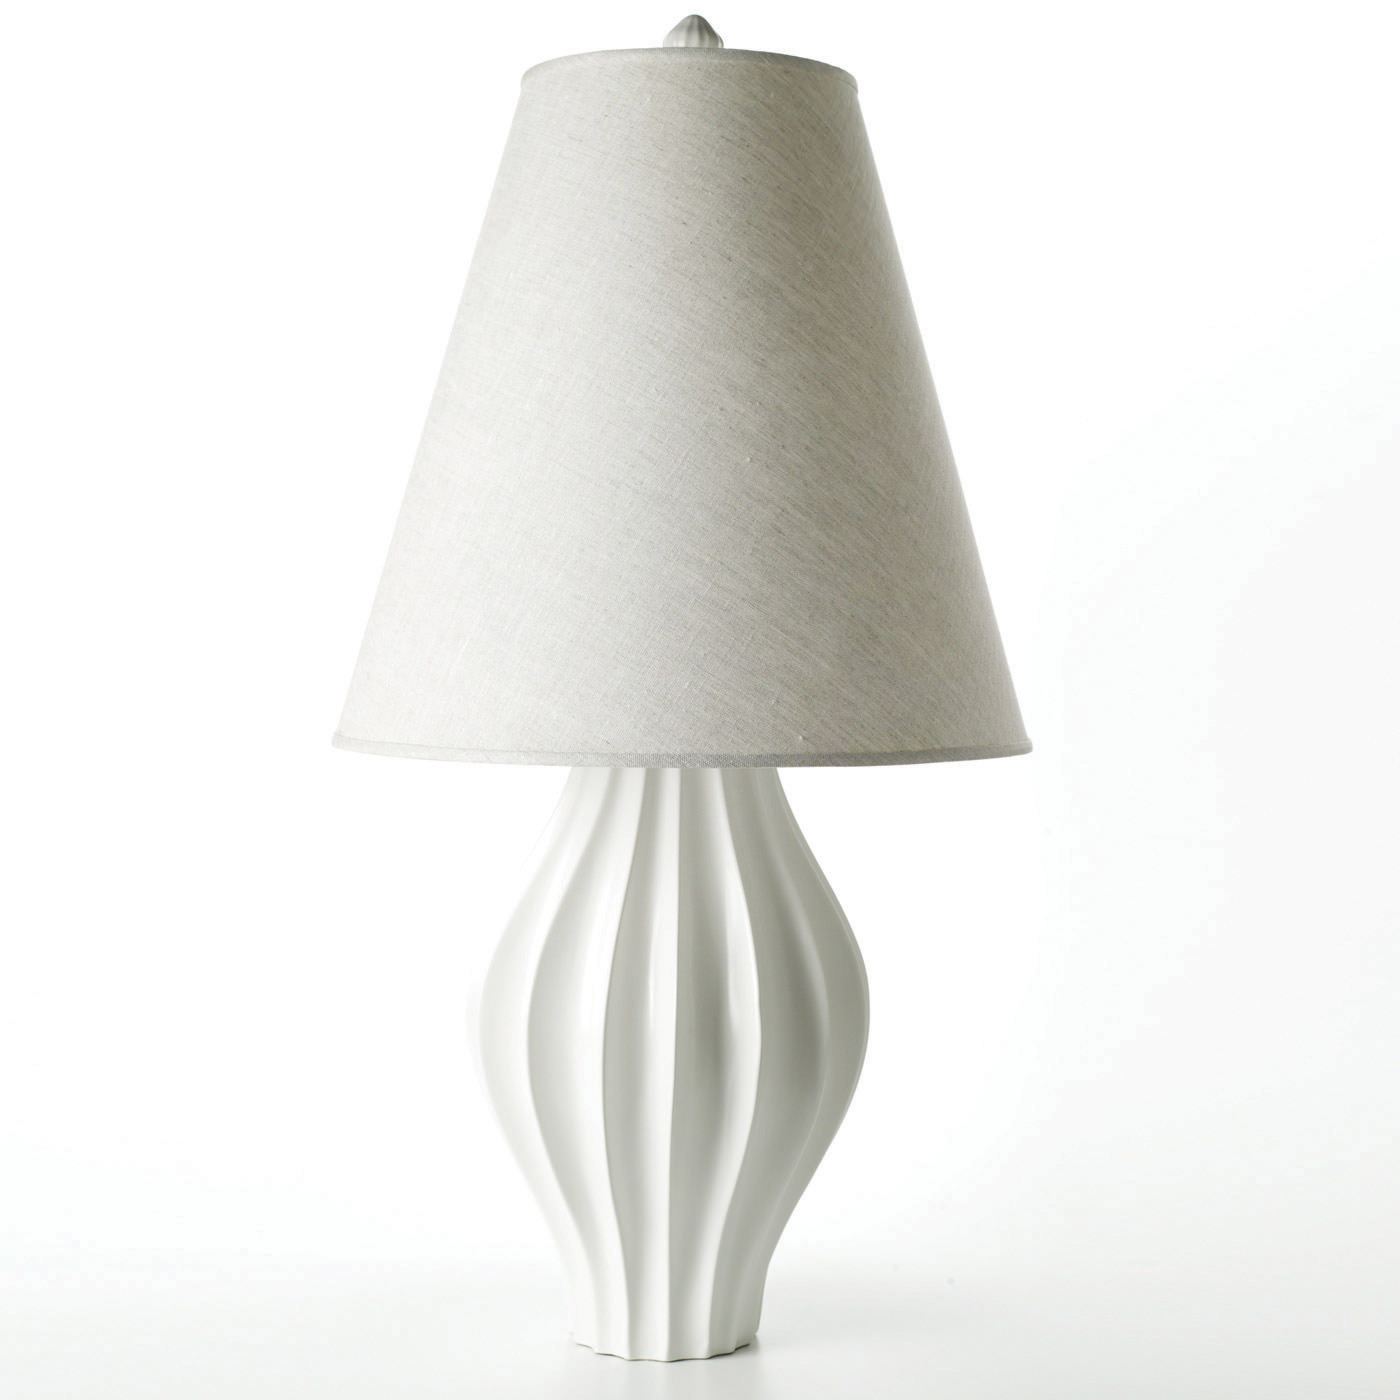 Giant Belly Table Lamp By Jonathan Adler | JA 18152 Ideas